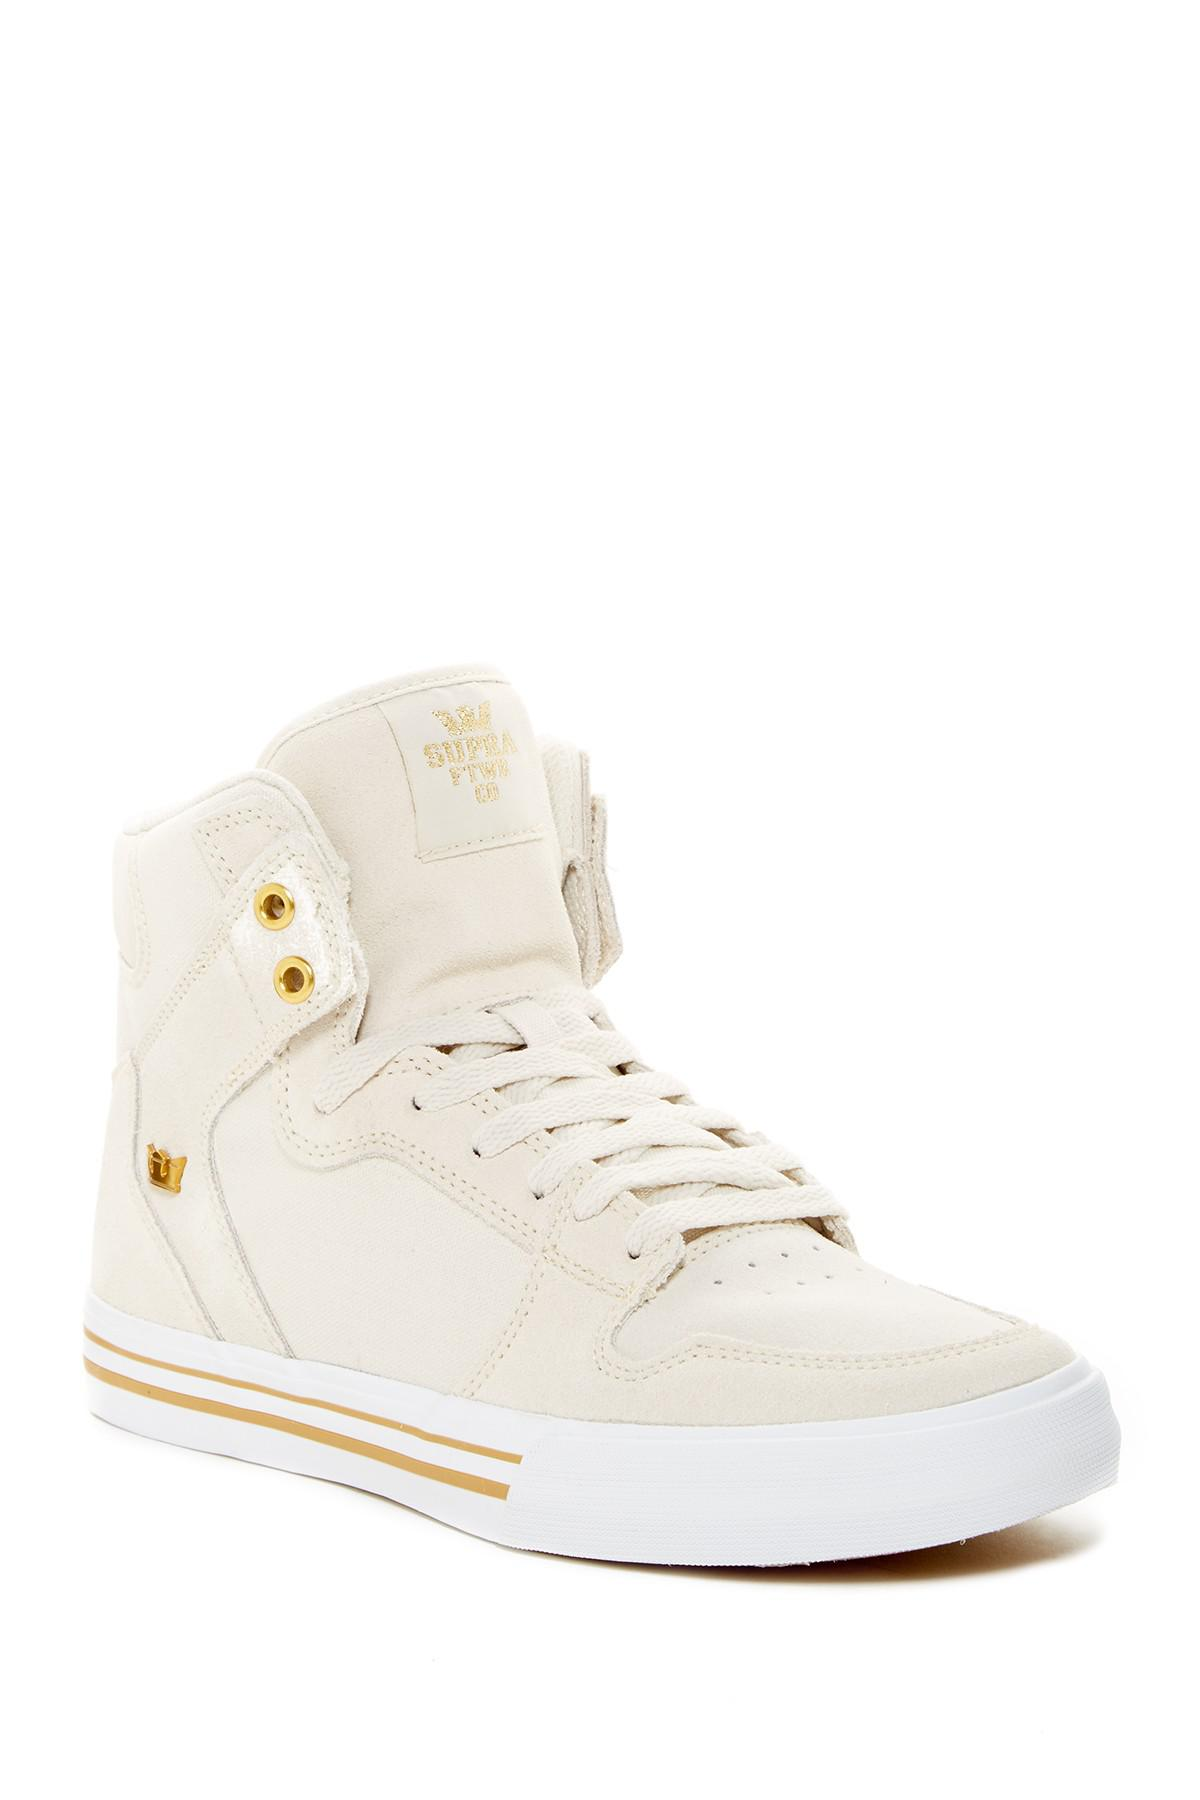 94f100d448 Lyst - Supra Vaider High Top Sneaker in White for Men